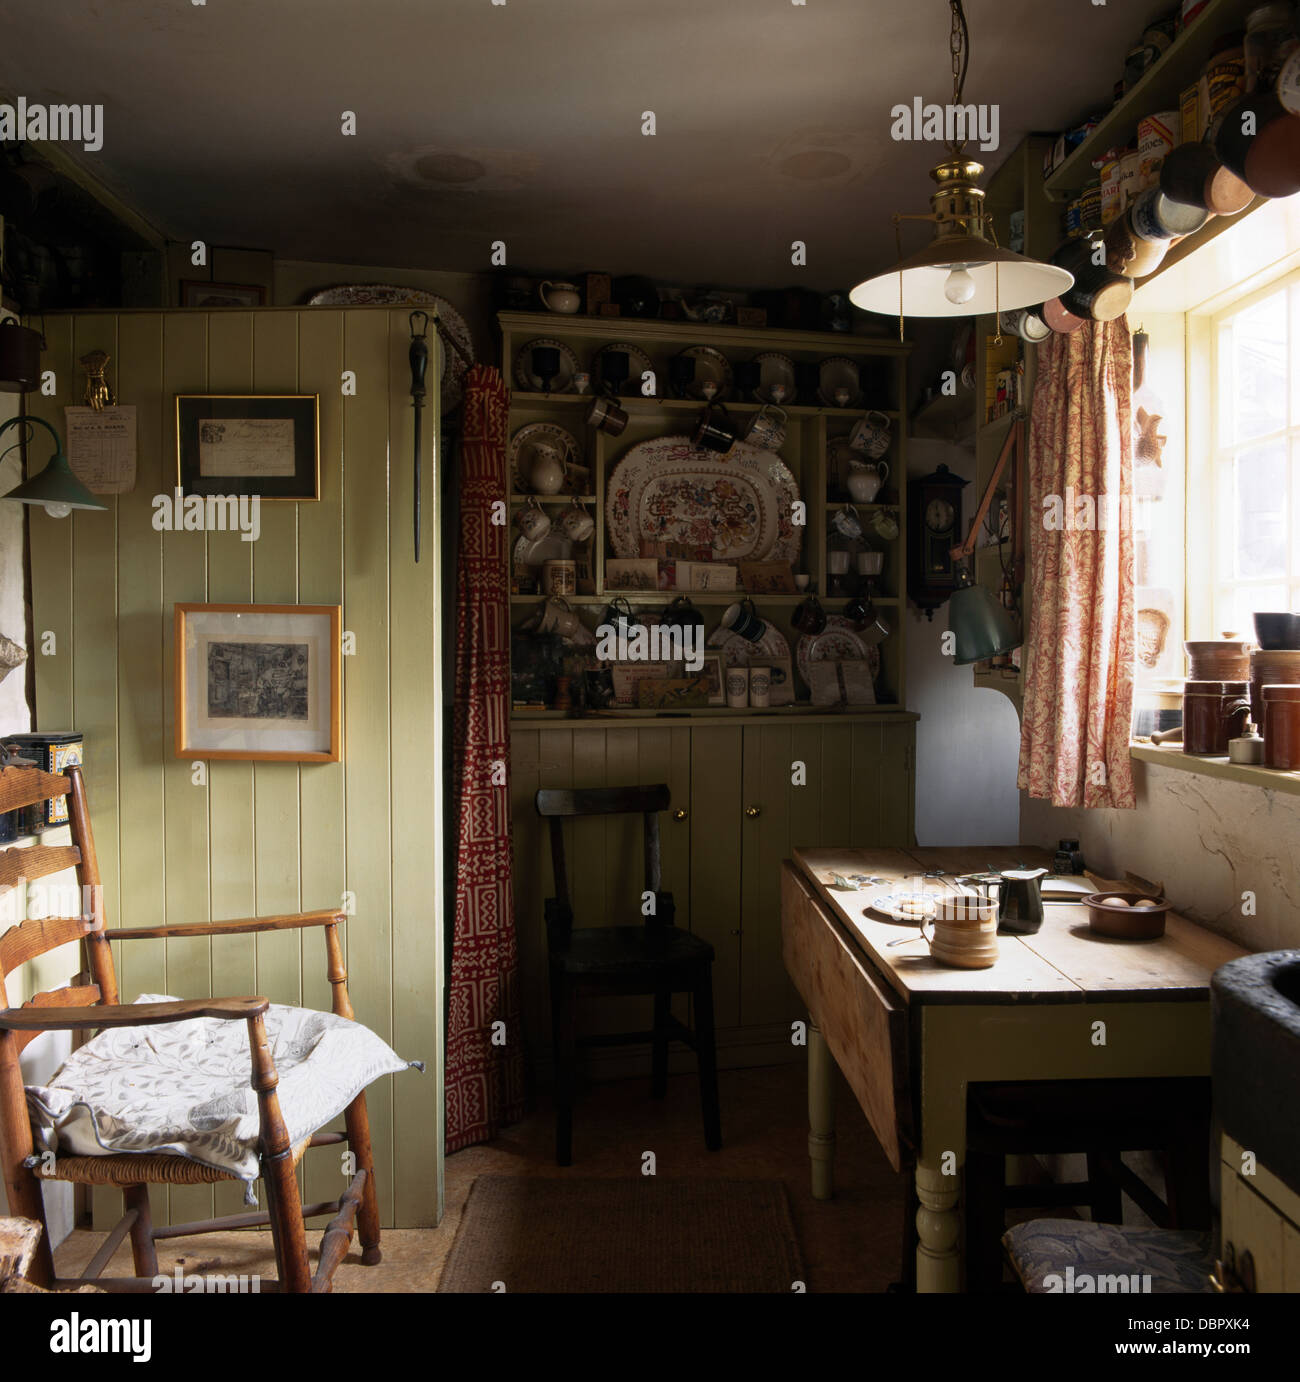 small kitchen table and chairs office chair kuwait rocking old pine in fashioned cottage stock photo: 58896184 - alamy